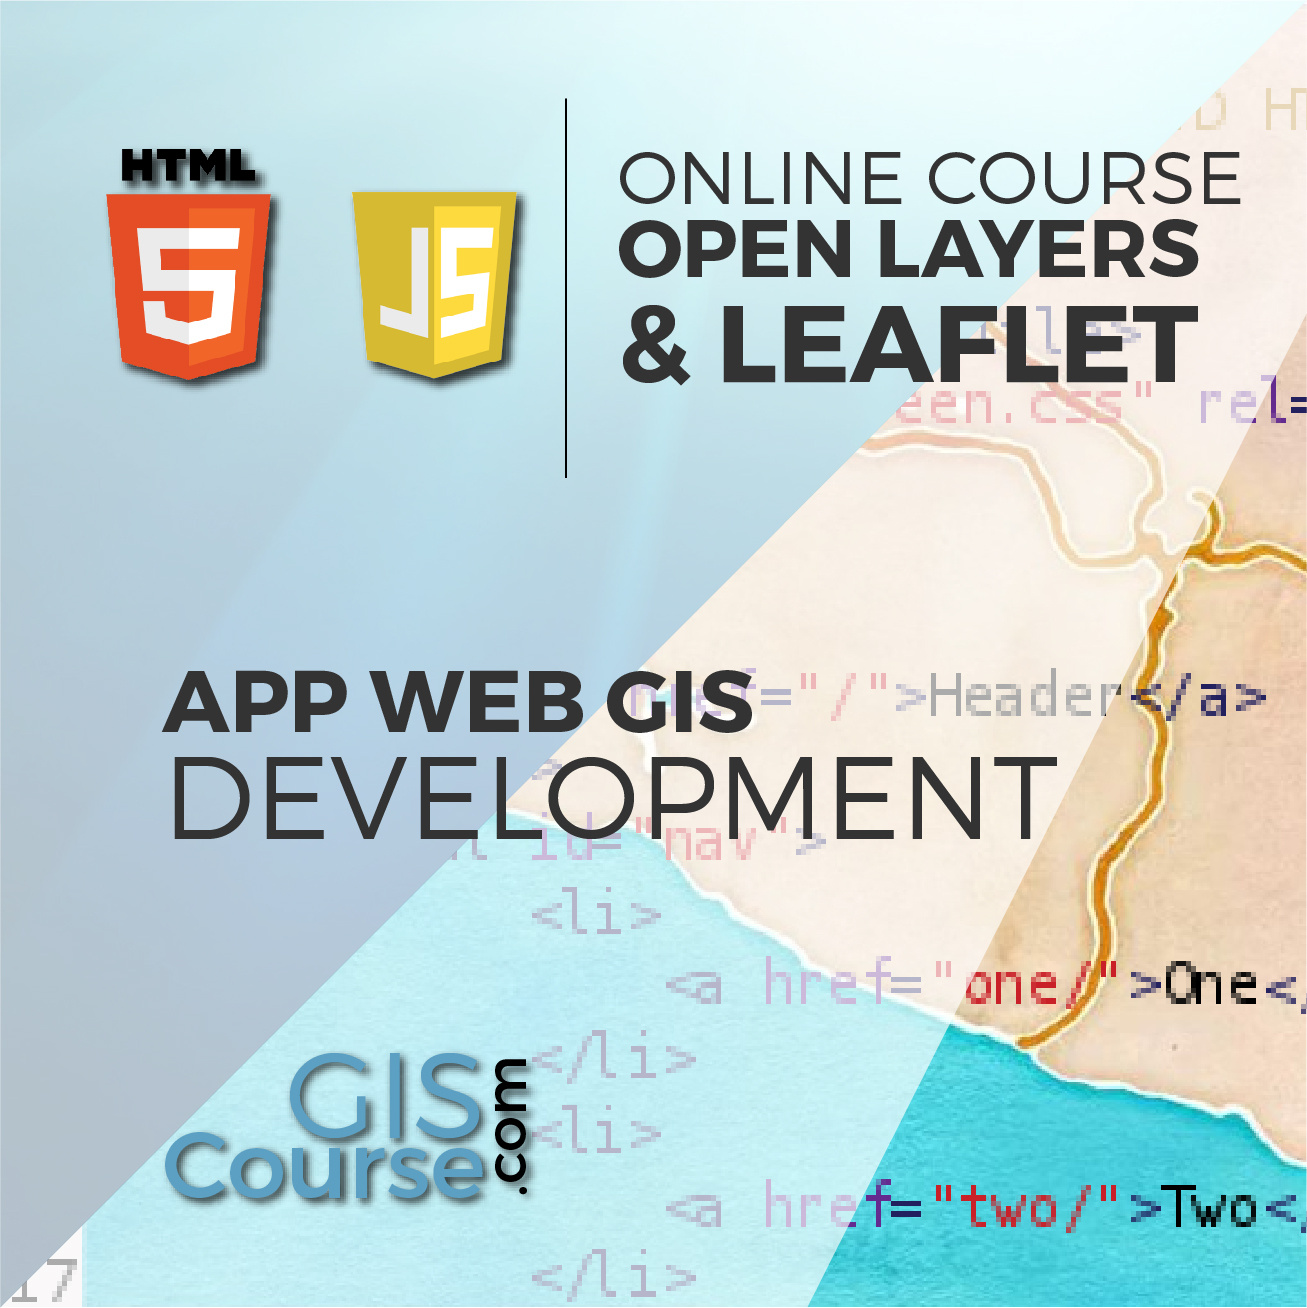 Development Of Web Based Gis Applications Using Open Layers And